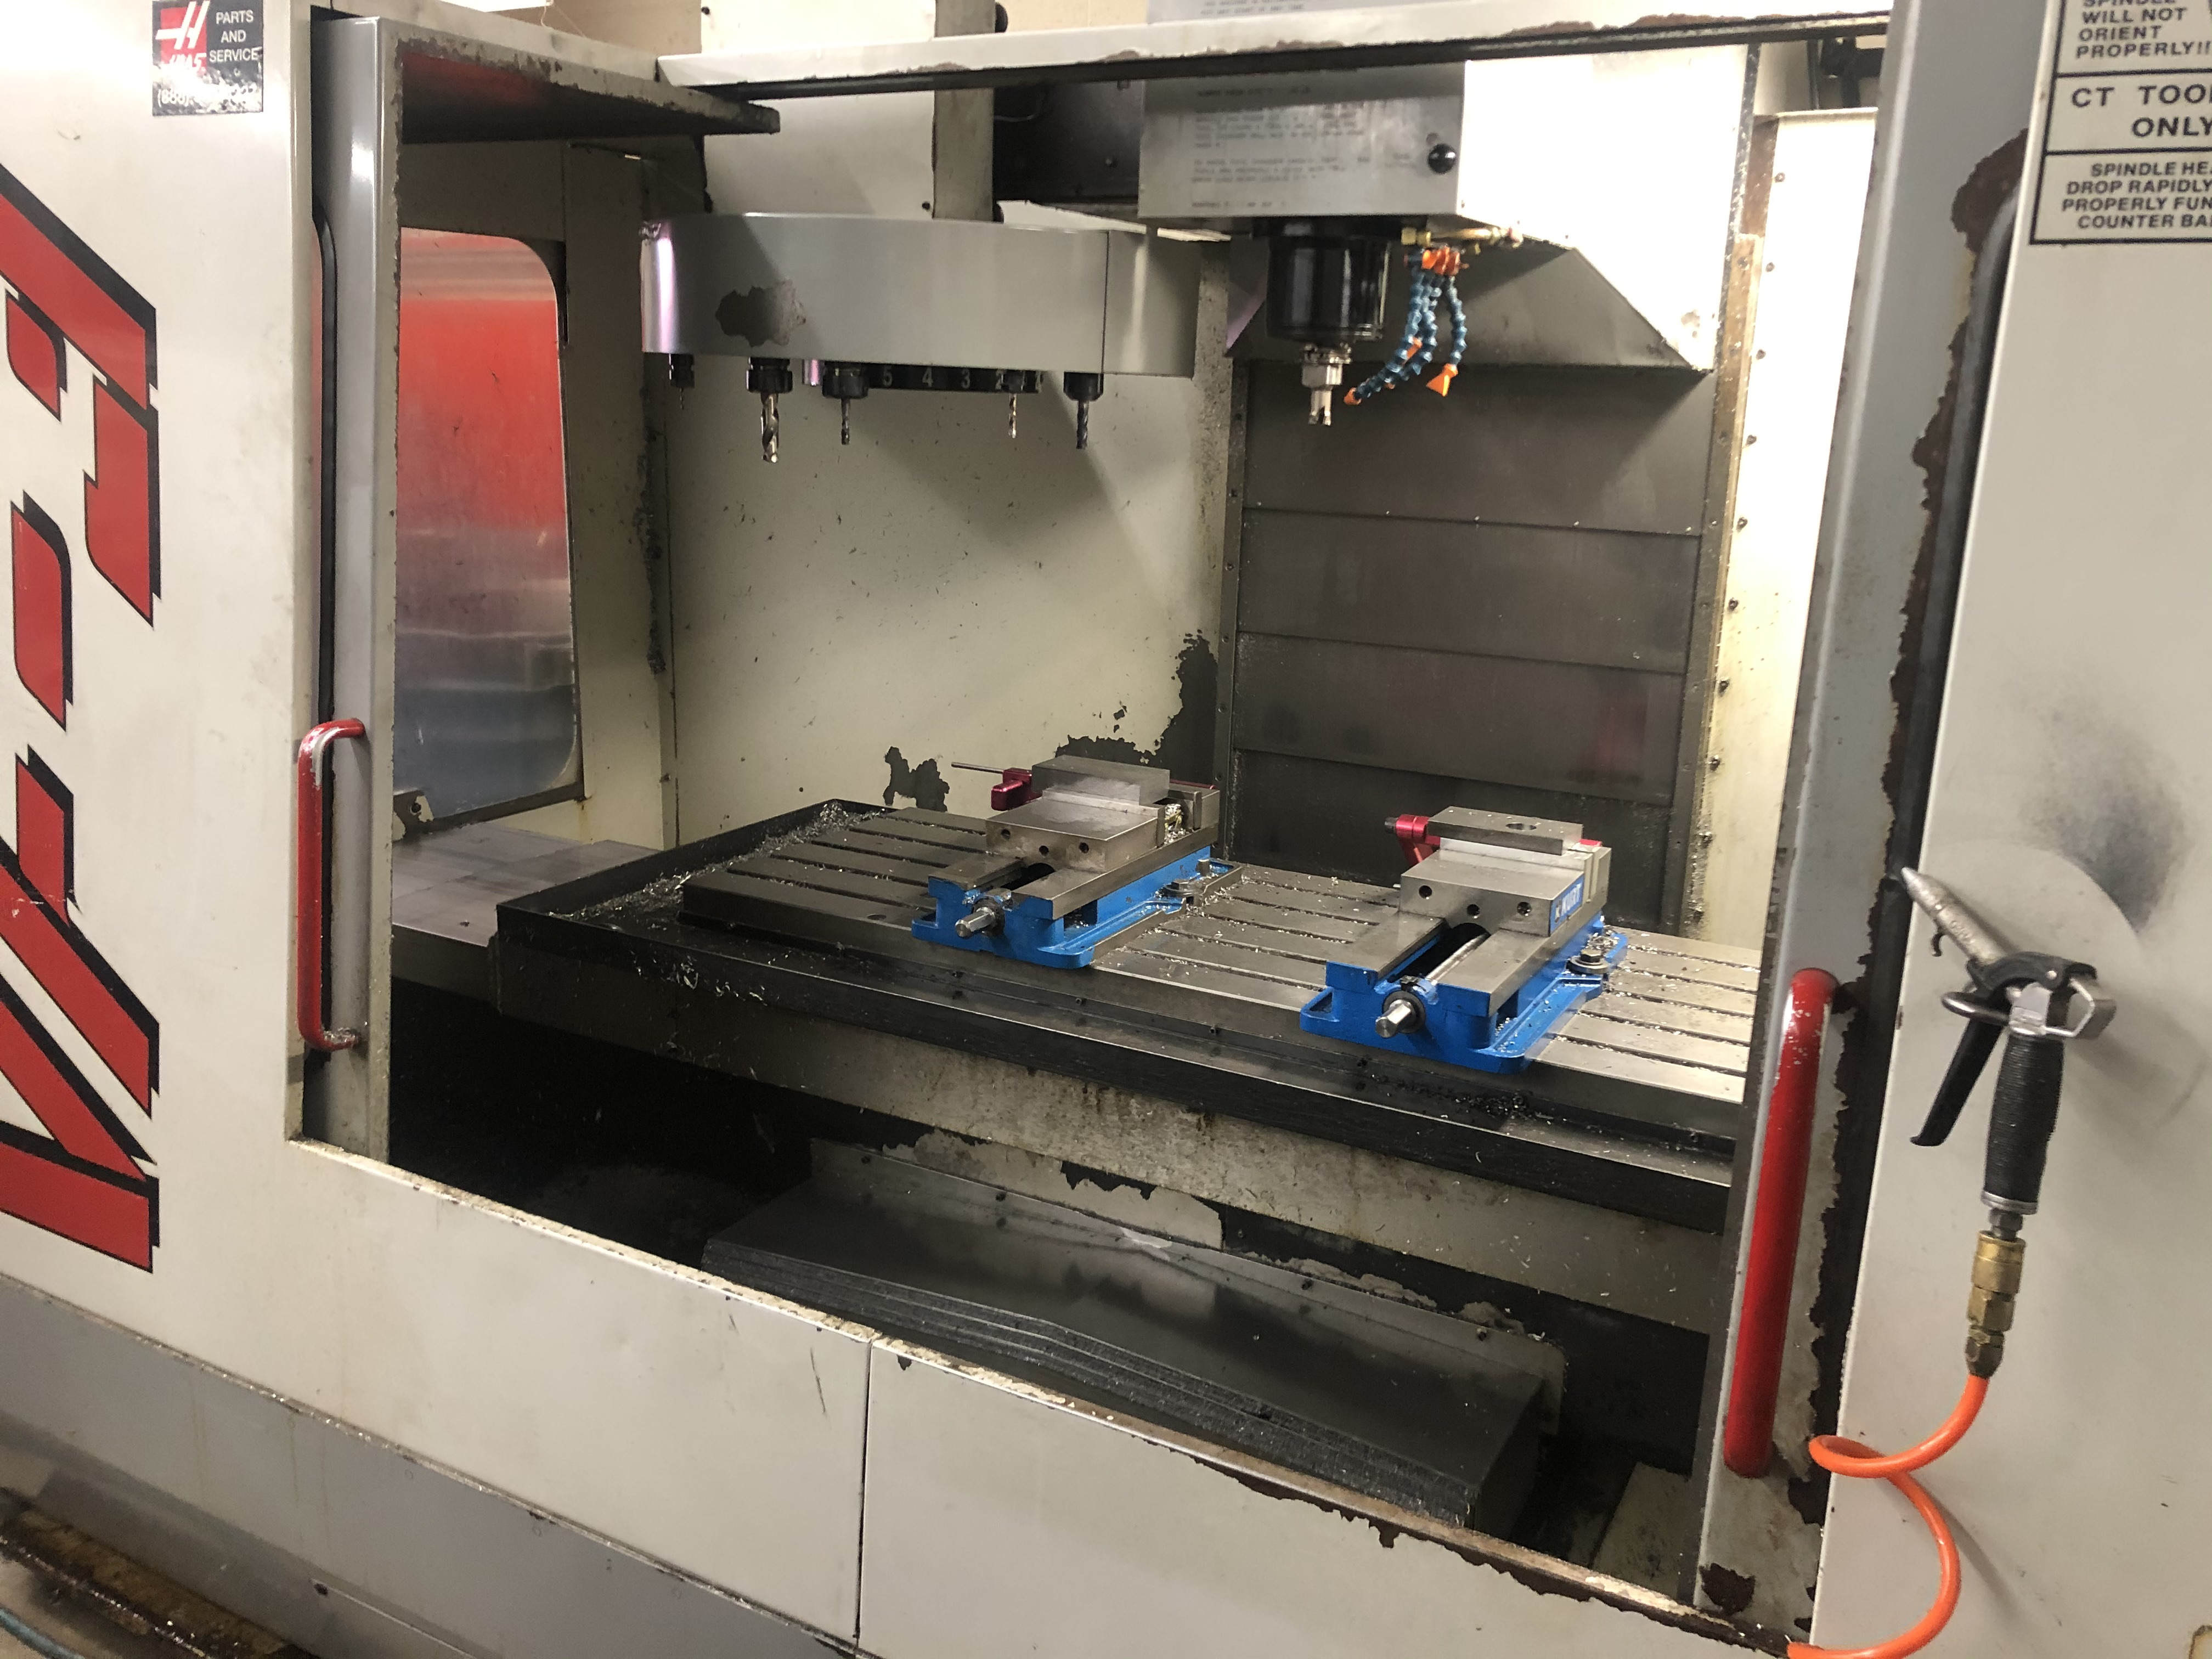 1997 3 Axis Haas VF3 with wiring for 4th Axis, PLR Electronics Floppy to USB Conversion